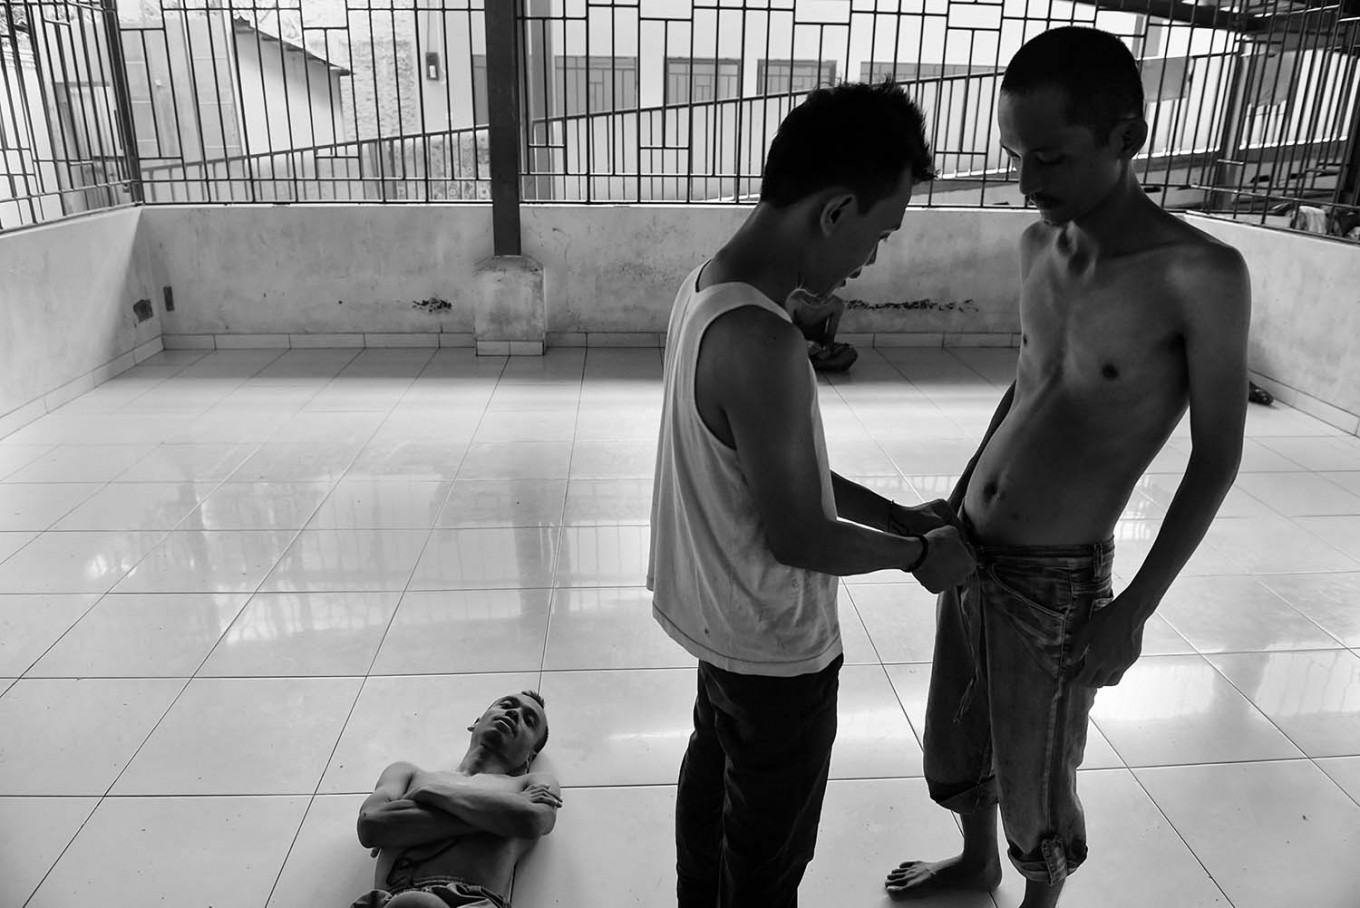 A nurse helps a patient put on his pants while another lies on the floor. Antara/Hafidz Mubarak